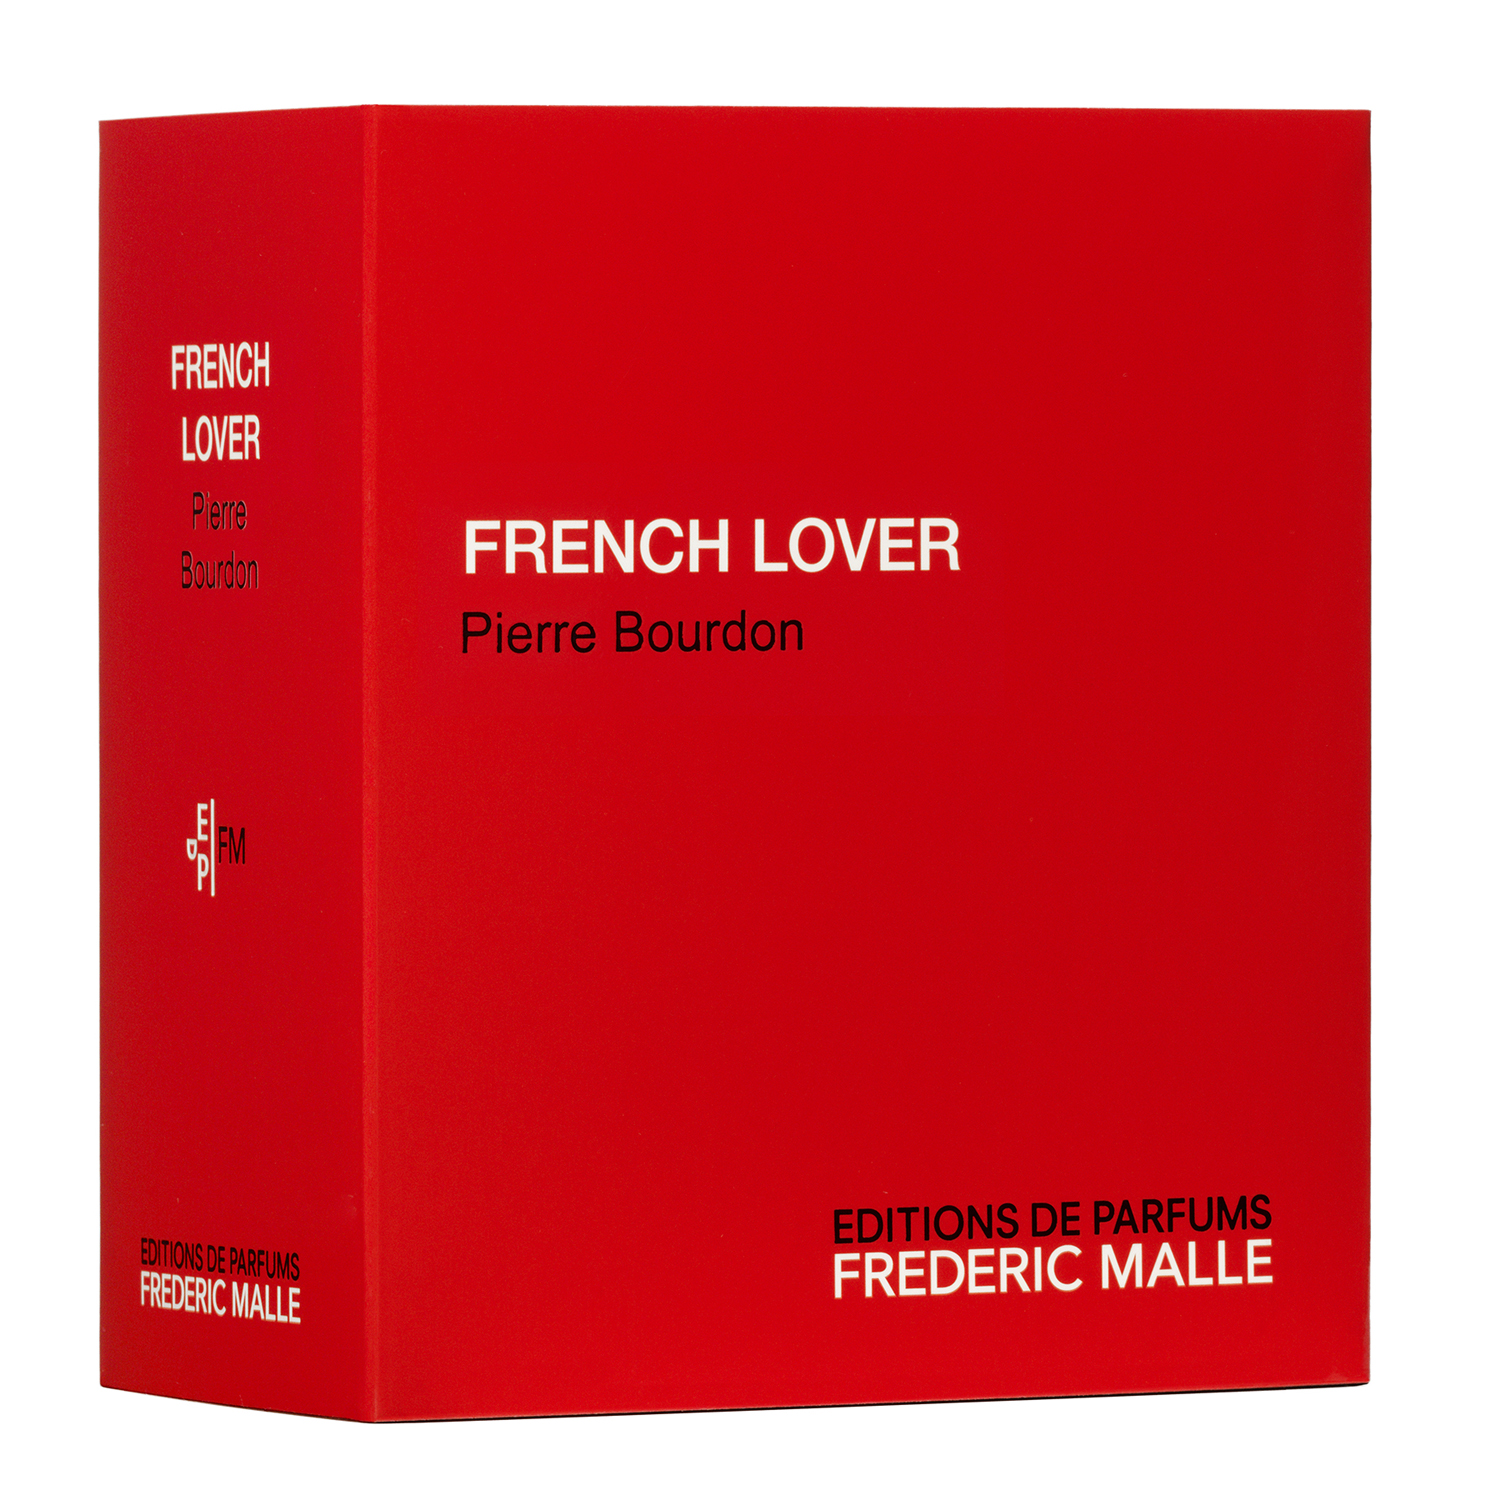 FREDERIC MALLE  French Lover Perfume 50 ml